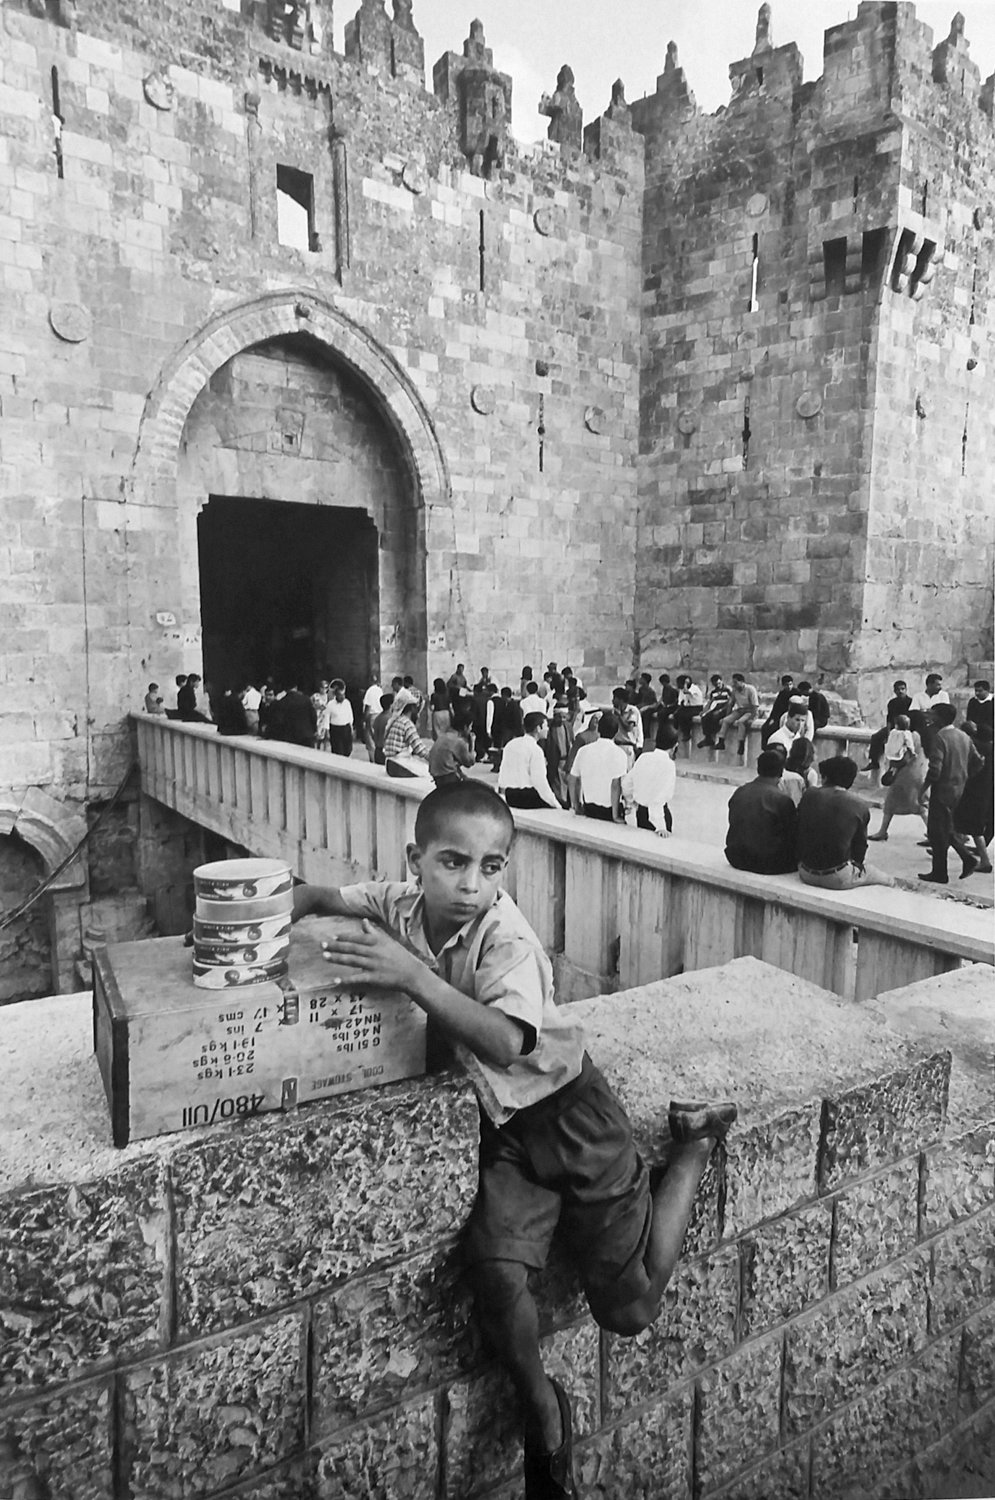 An Arab fish seller is stationed near the Damascus Gate in Jerusalem in a 1967 photograph by Leonard Freed.